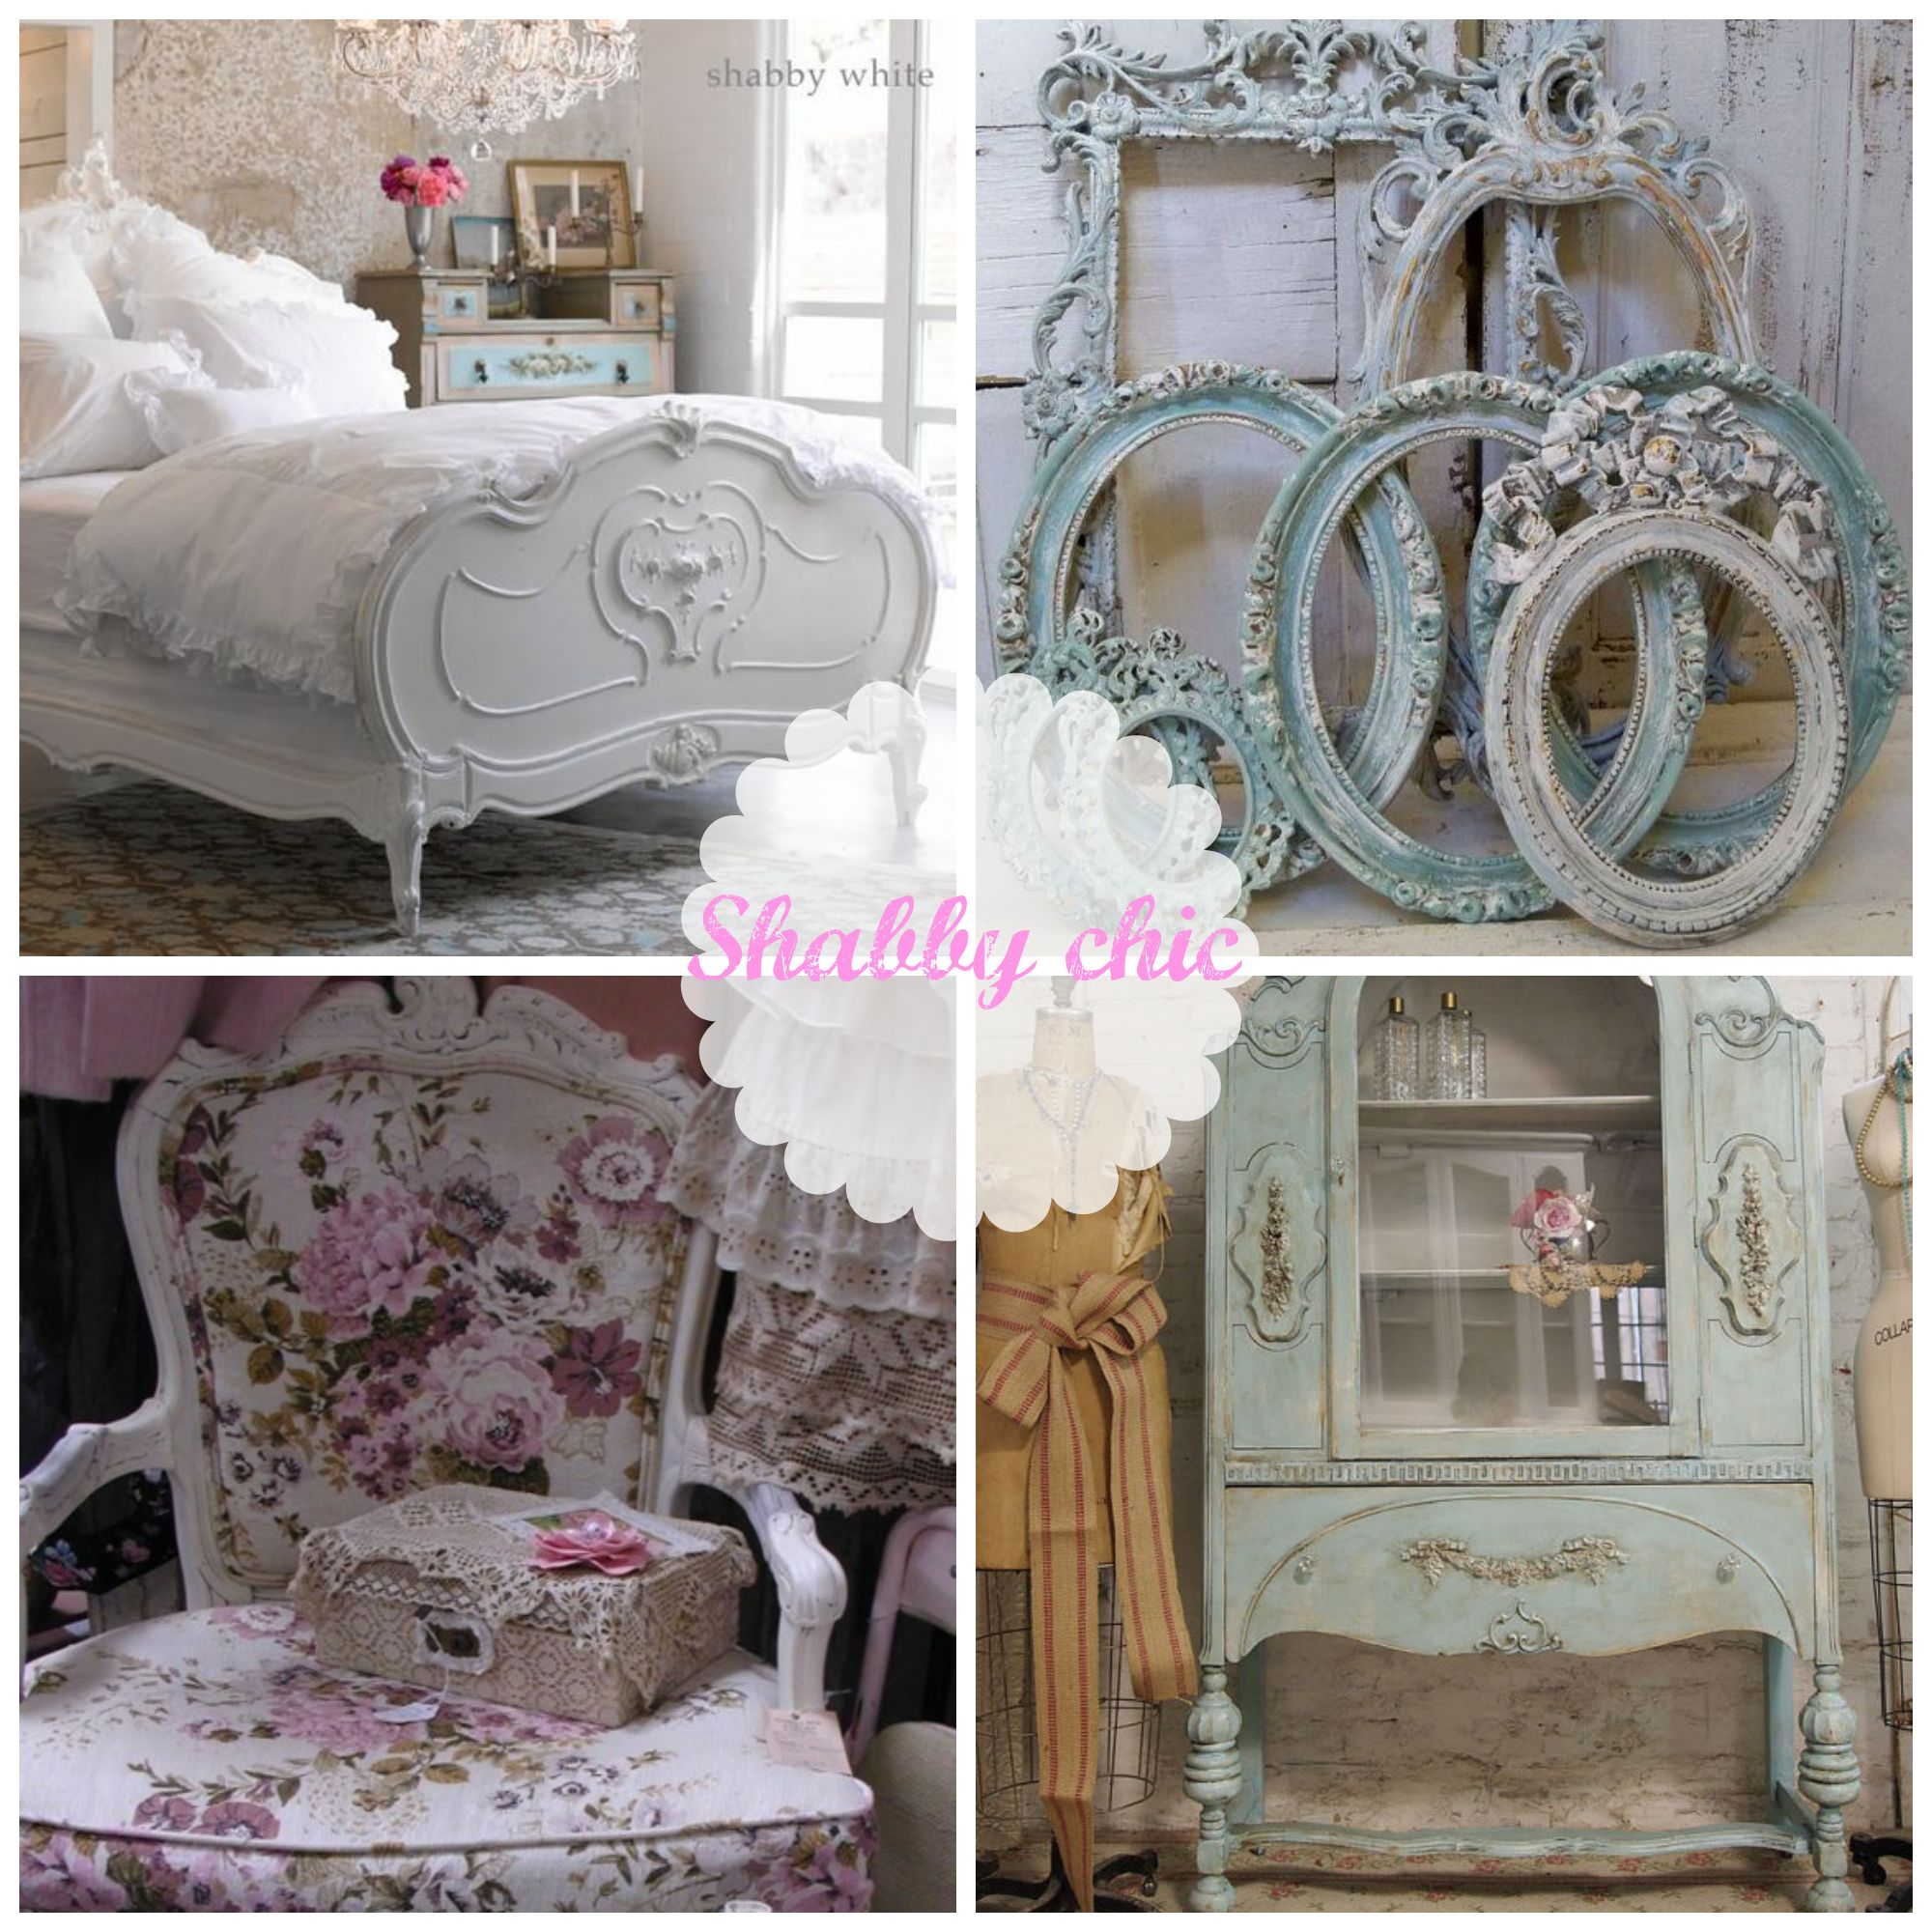 Muebles estilo shabby chic vintage decoracion pinterest for Muebles shabby